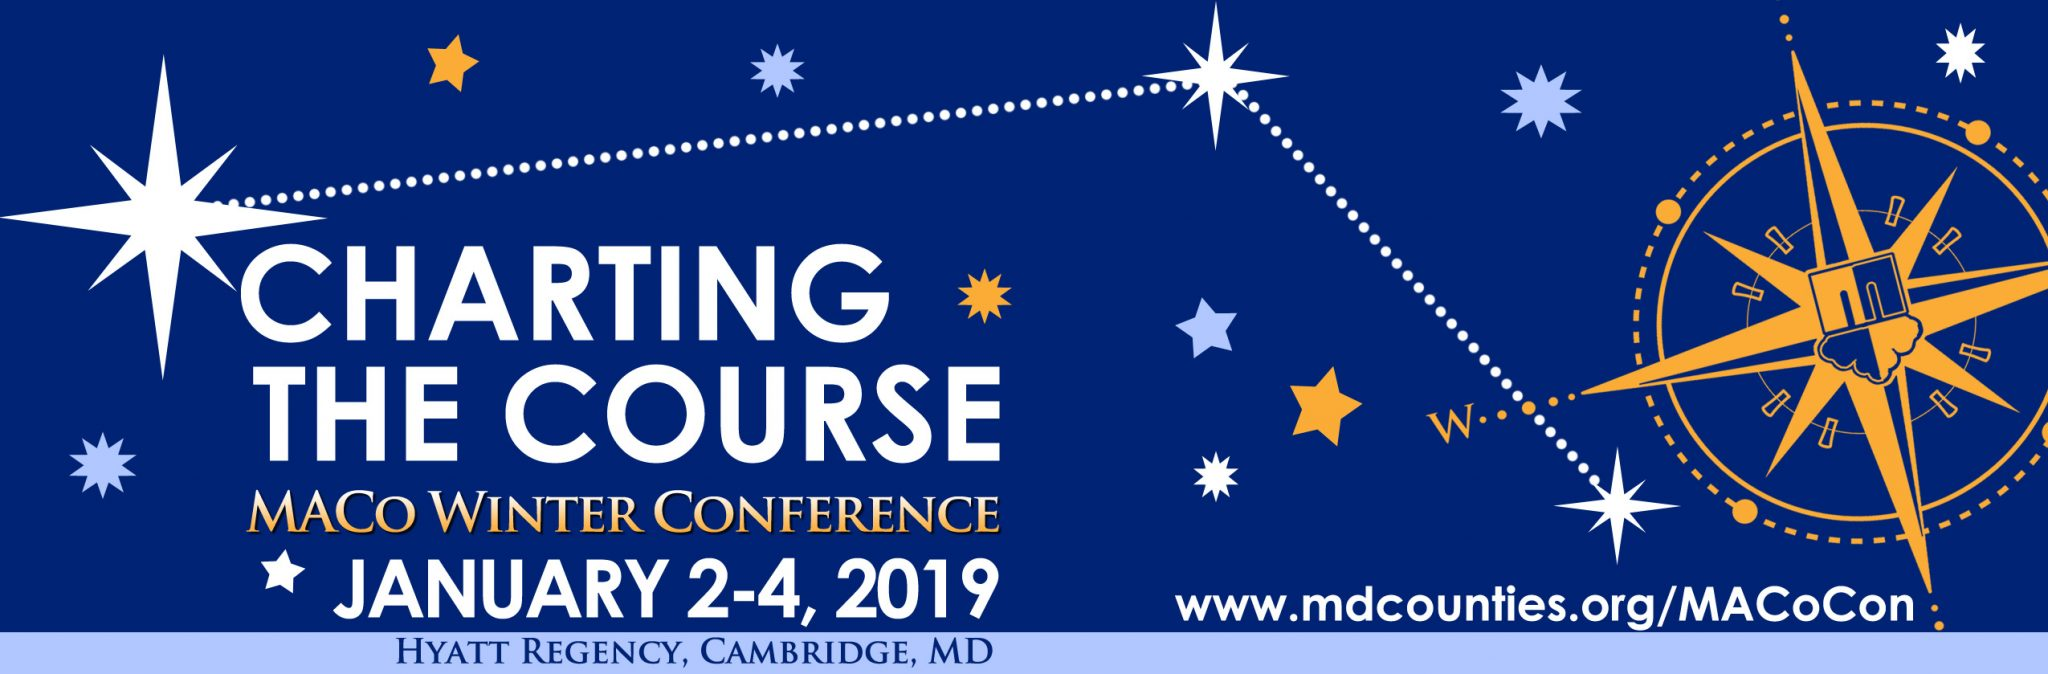 Register Today for Winter #MACoCon